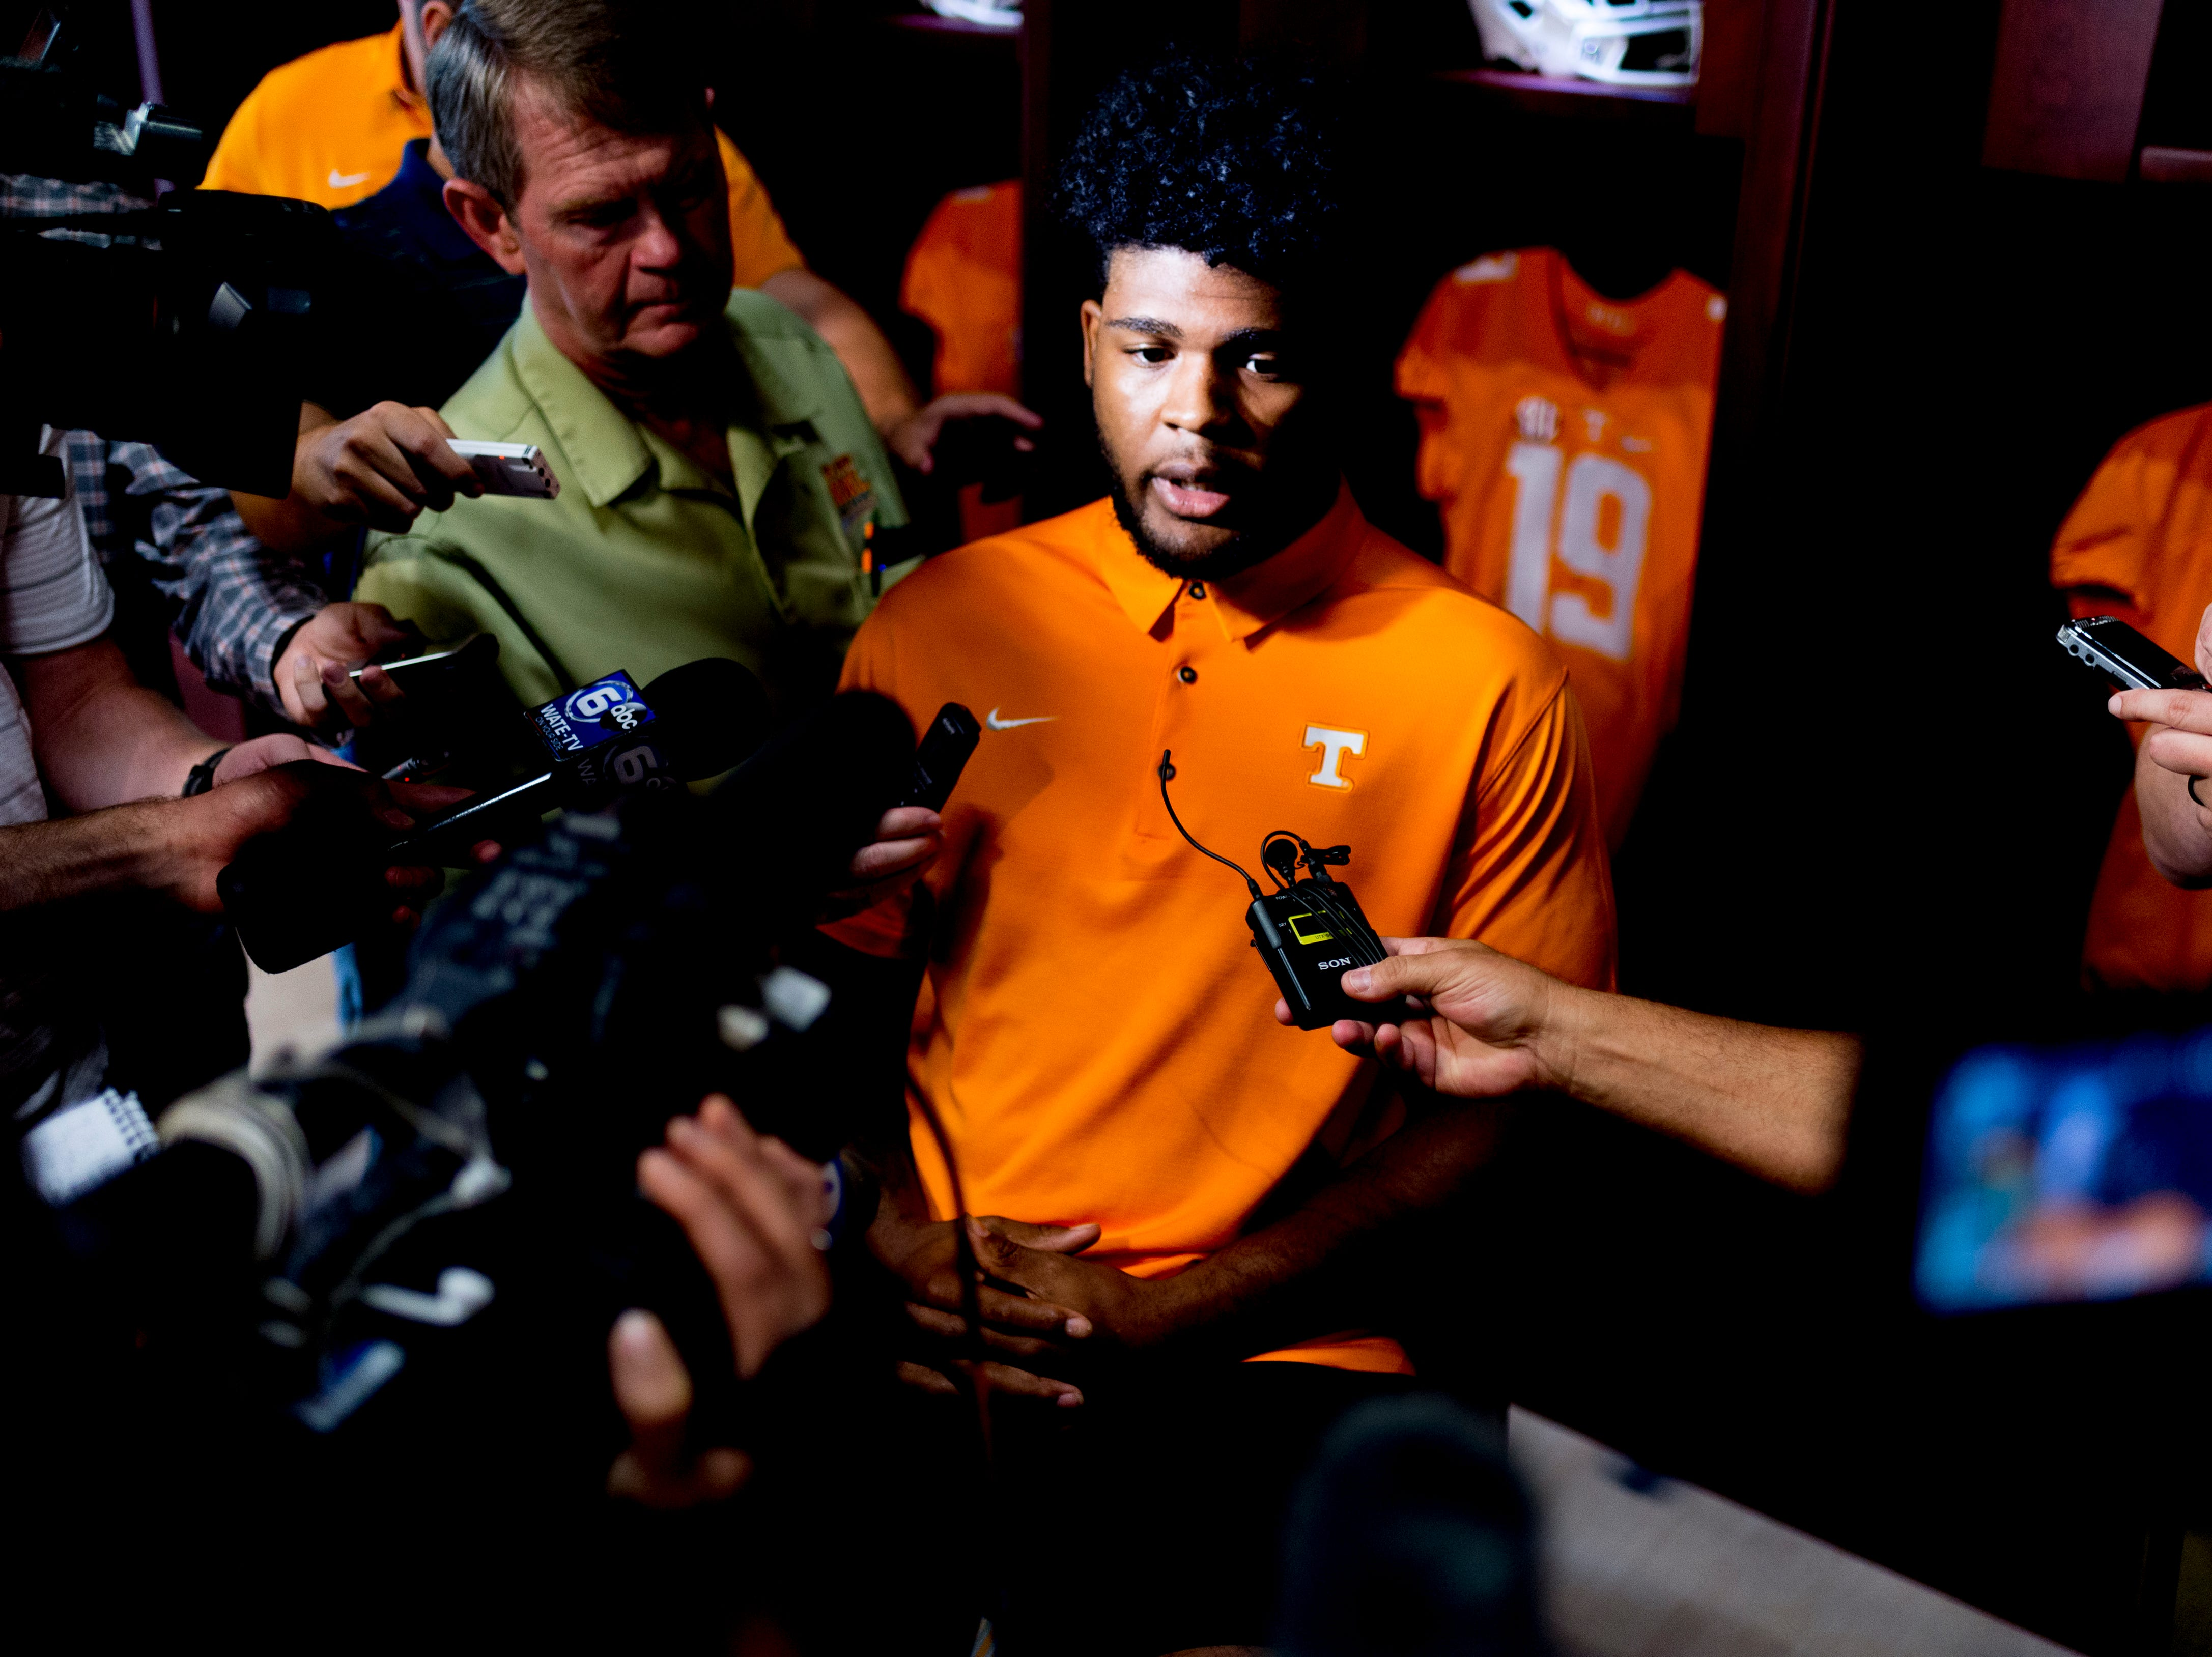 Tennessee linebacker Darrin Kirkland Jr. (34) speaks during a press conference at the Roy & Lucy Hand Digital Studio in Knoxville, Tennessee on Thursday, August 9, 2018.